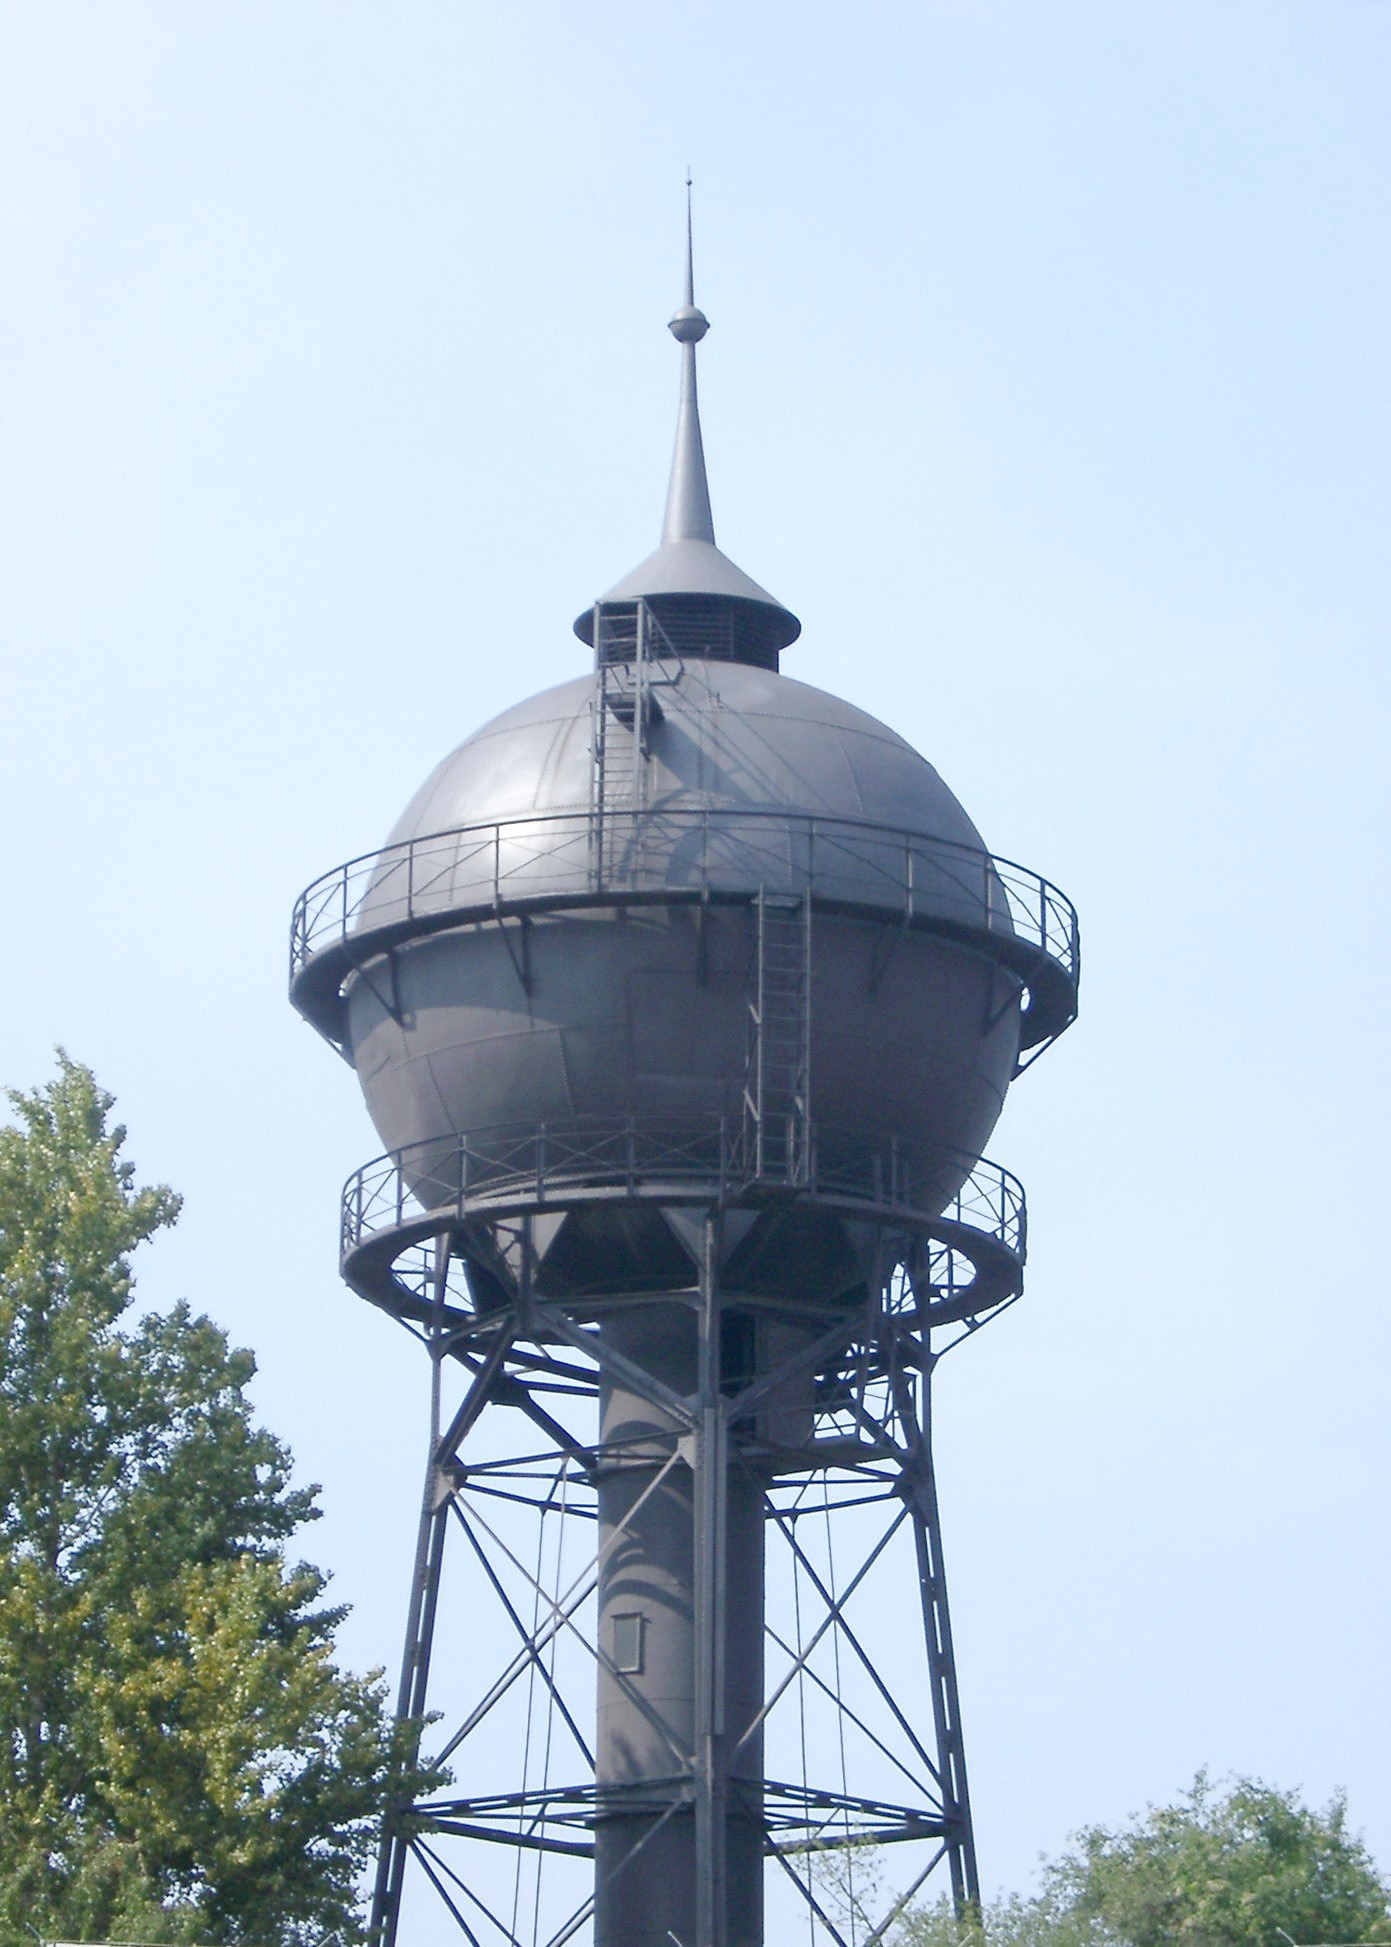 Water Tower at Former Anhalter Freight Yard and Now Part of Deutsches Technikmuseum in Berlin, Germay